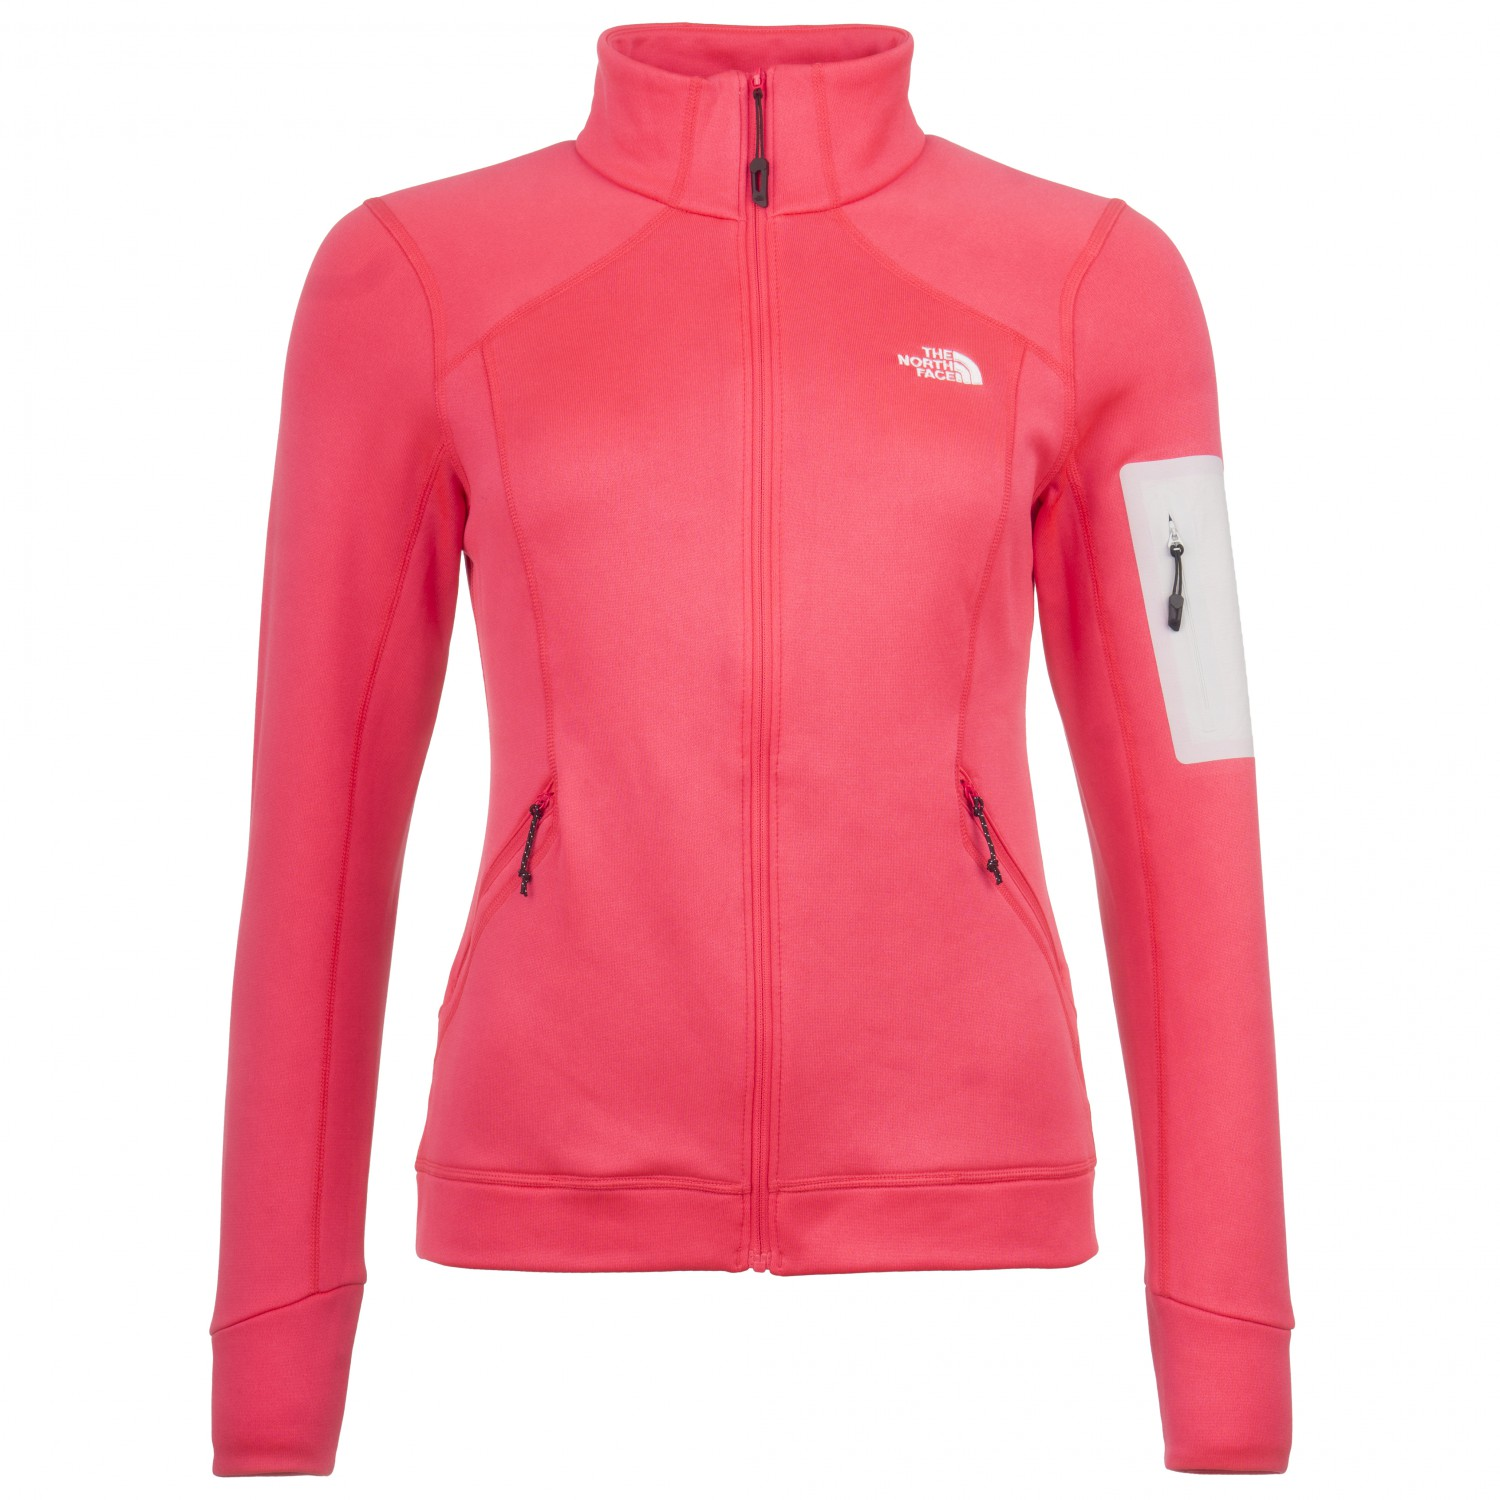 cca5cdbf5 The North Face - Women's Impendor Powerdry Jacket - Atomic Pink Dark  Heather | XS